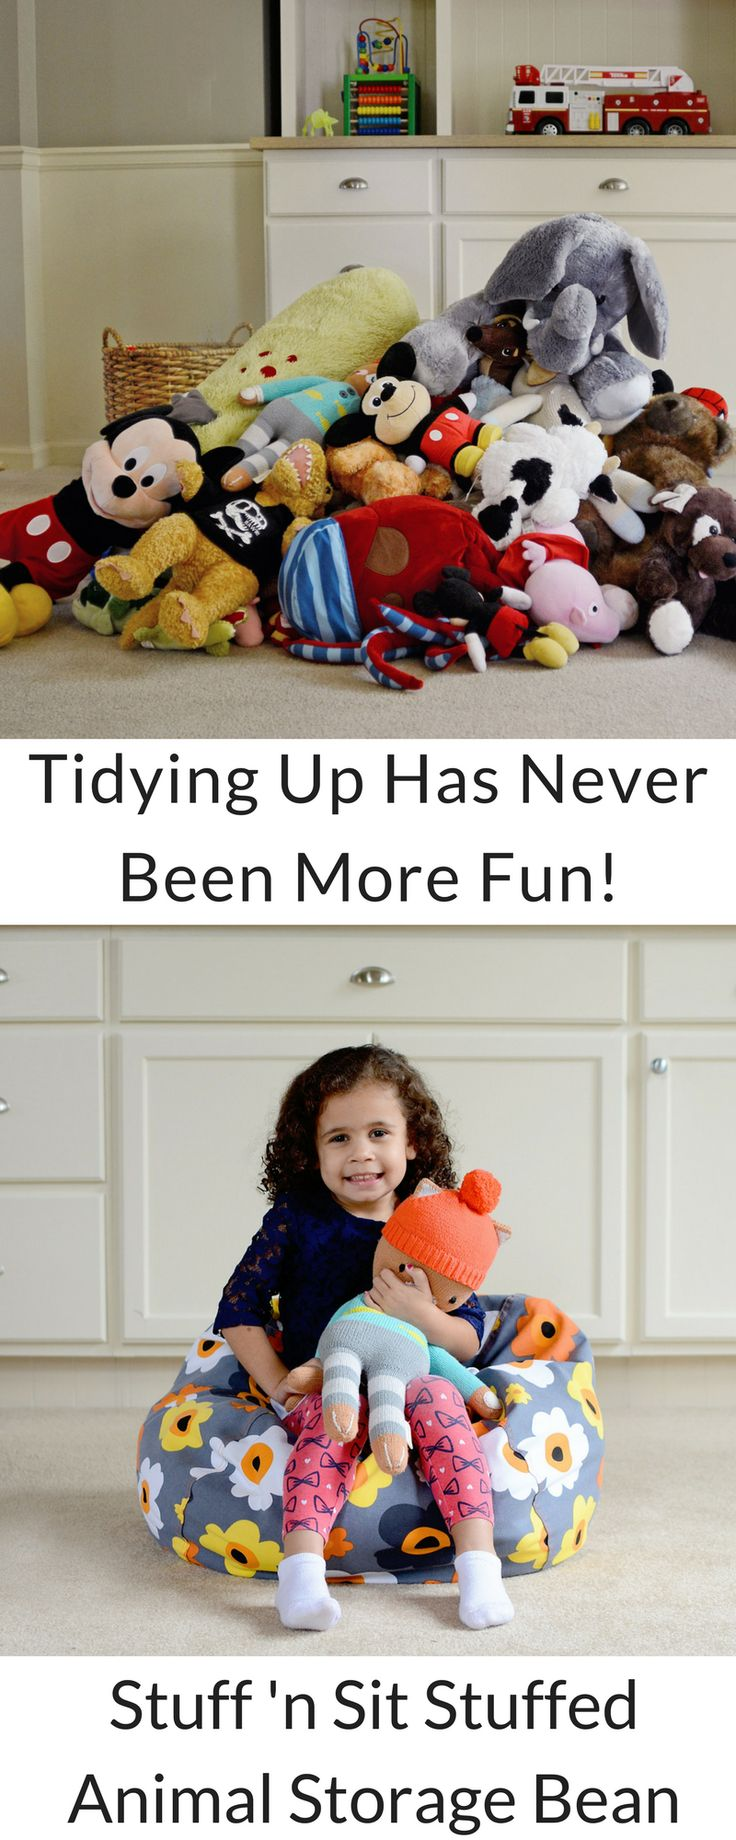 Stuffed Animals taking over your home? Declutter + organize your house today with a Stuff 'n Sit Stuffed Animal Storage Bean Bag. Organizing stuffed animals has never been easier!